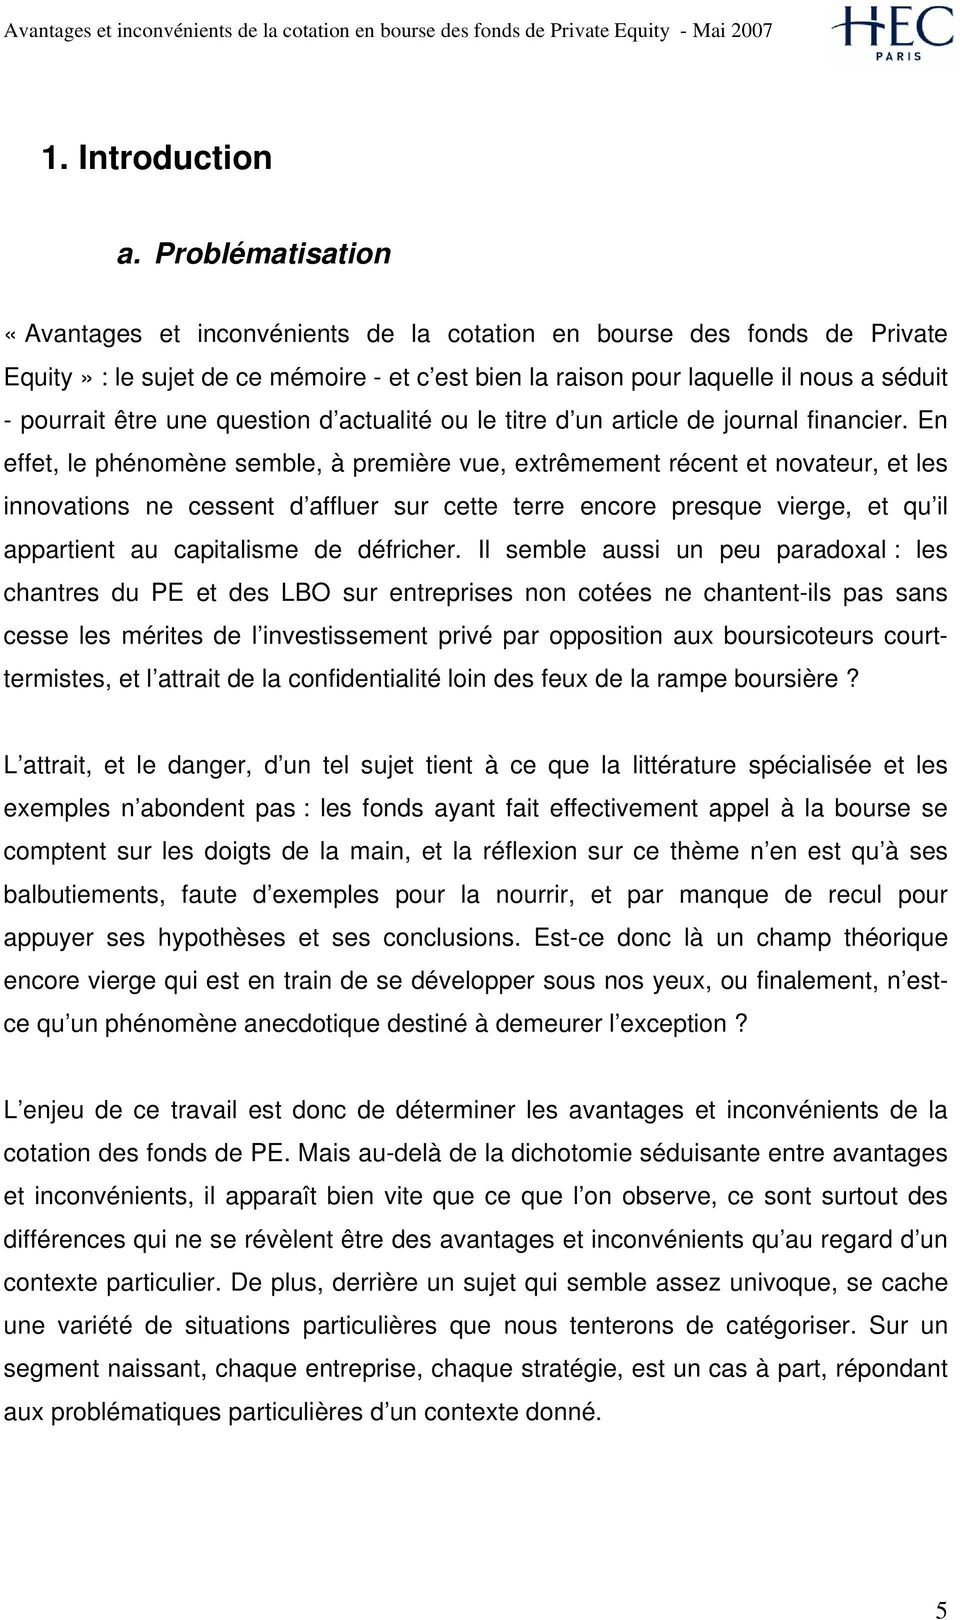 une question d actualité ou le titre d un article de journal financier.